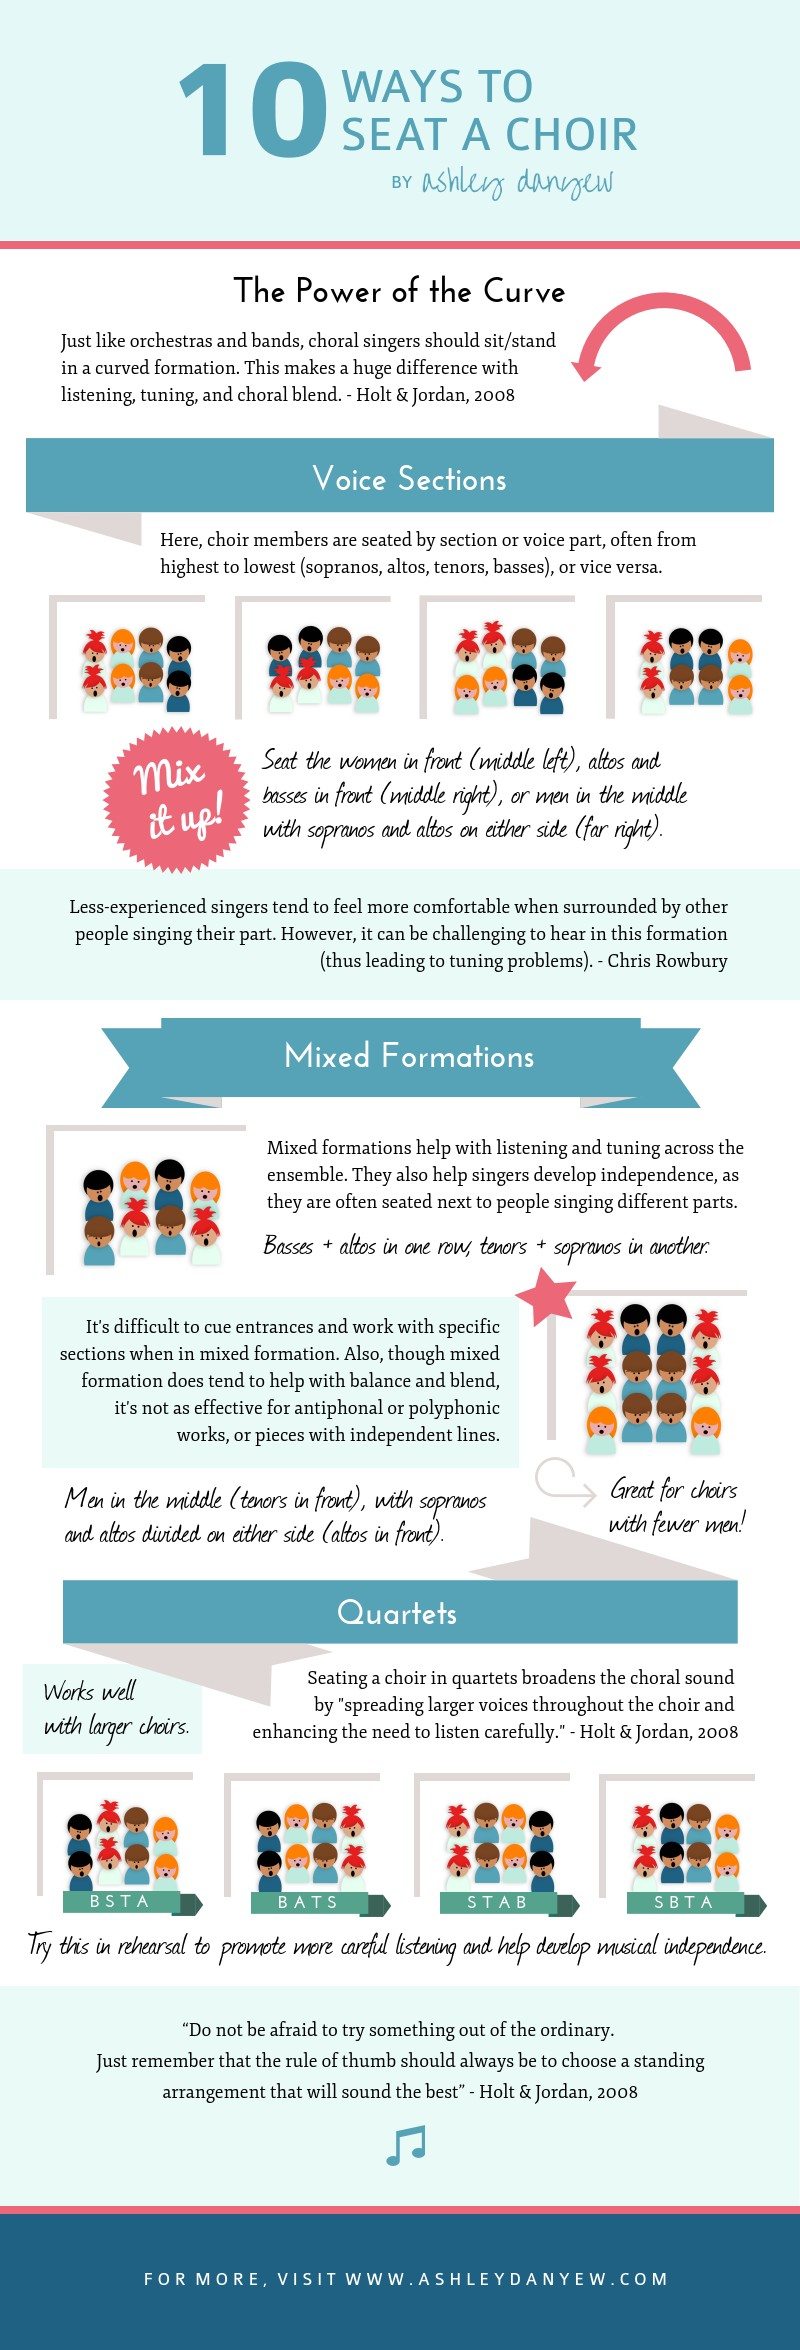 Copy of 10 Ways to Seat a Choir [Infographic]